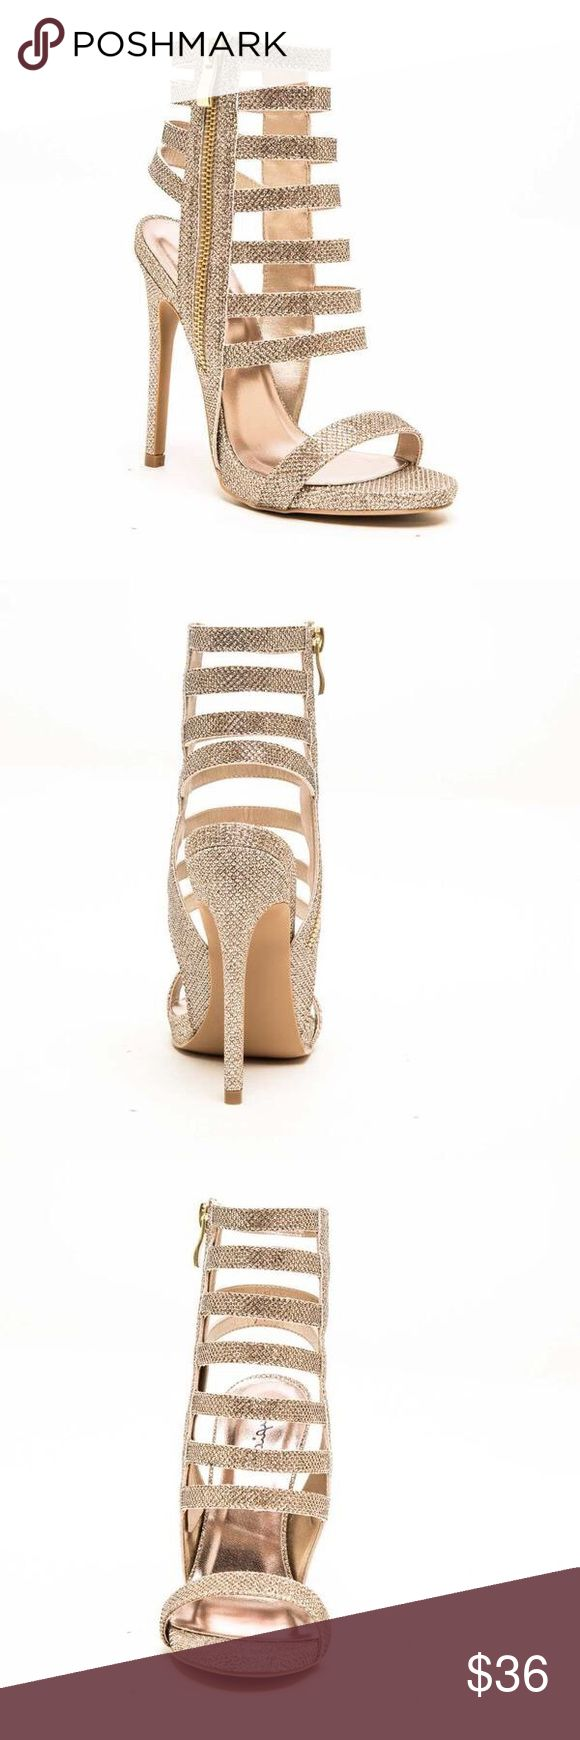 "NWOB Qupid Glee-104 Women's Cage Heel Sandal NWOB Qupid Glee-104 Women's Cage High Heel Sandal, Champagne Glitter PU, Size 8.5. Heel: 4.5"" (Approximately) Shoes Sandals"